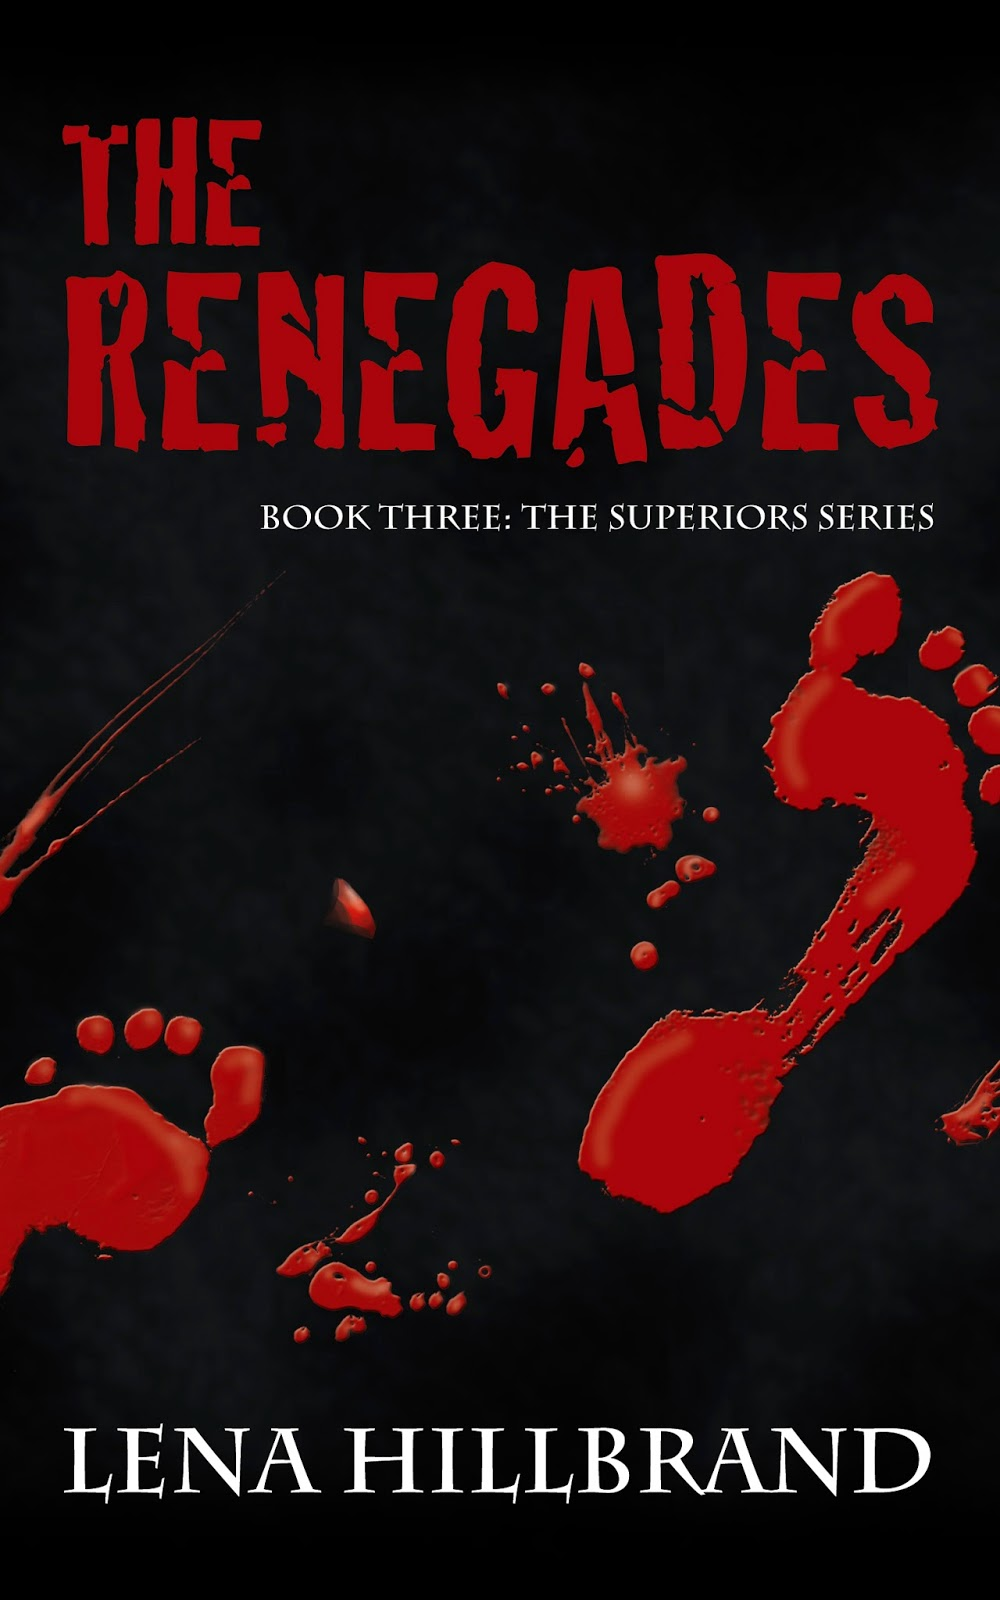 http://www.amazon.com/The-Renegades-Superiors-Lena-Hillbrand-ebook/dp/B00H0LPCQO/ref=sr_1_1?ie=UTF8&qid=1388697686&sr=8-1&keywords=renegades+hillbrand